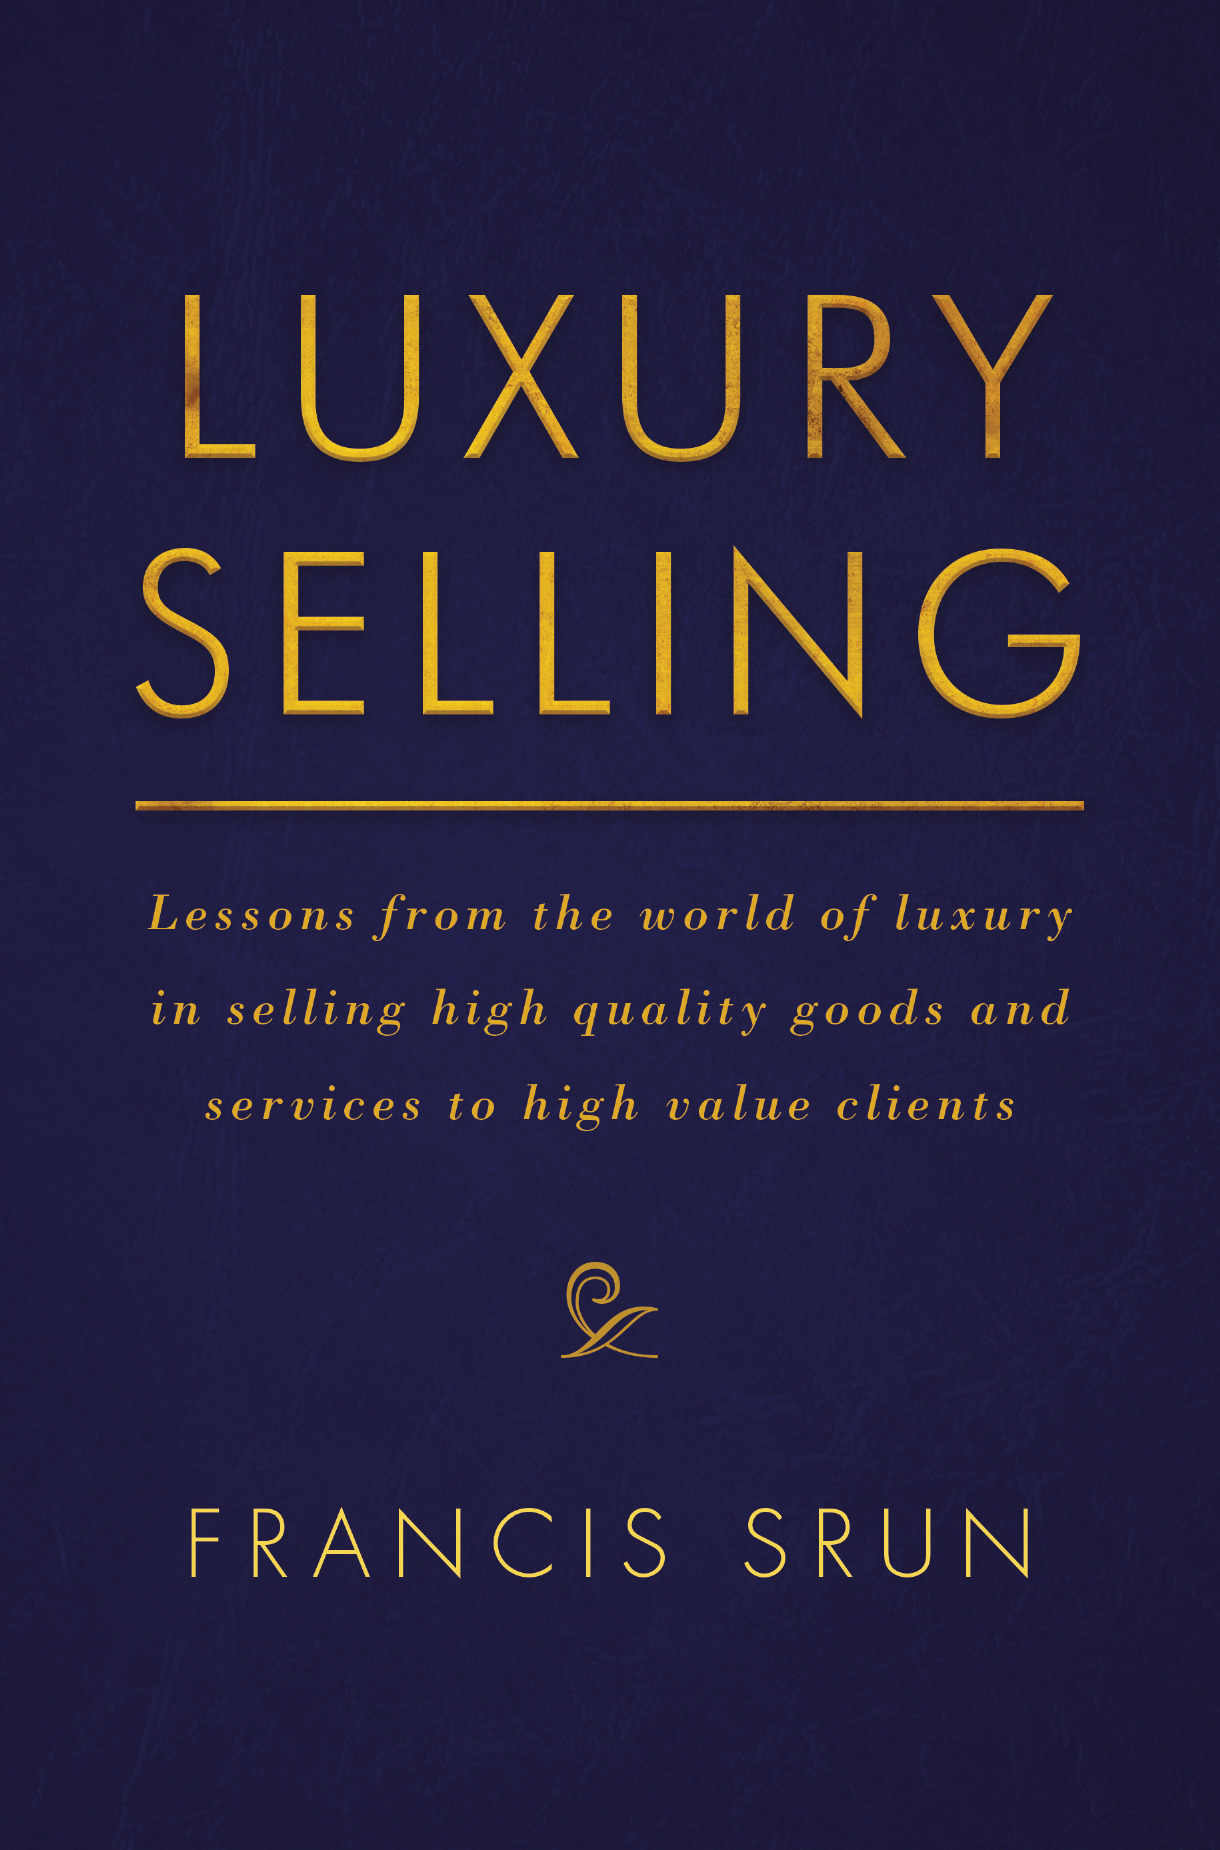 Srun, Francis - Luxury Selling, ebook